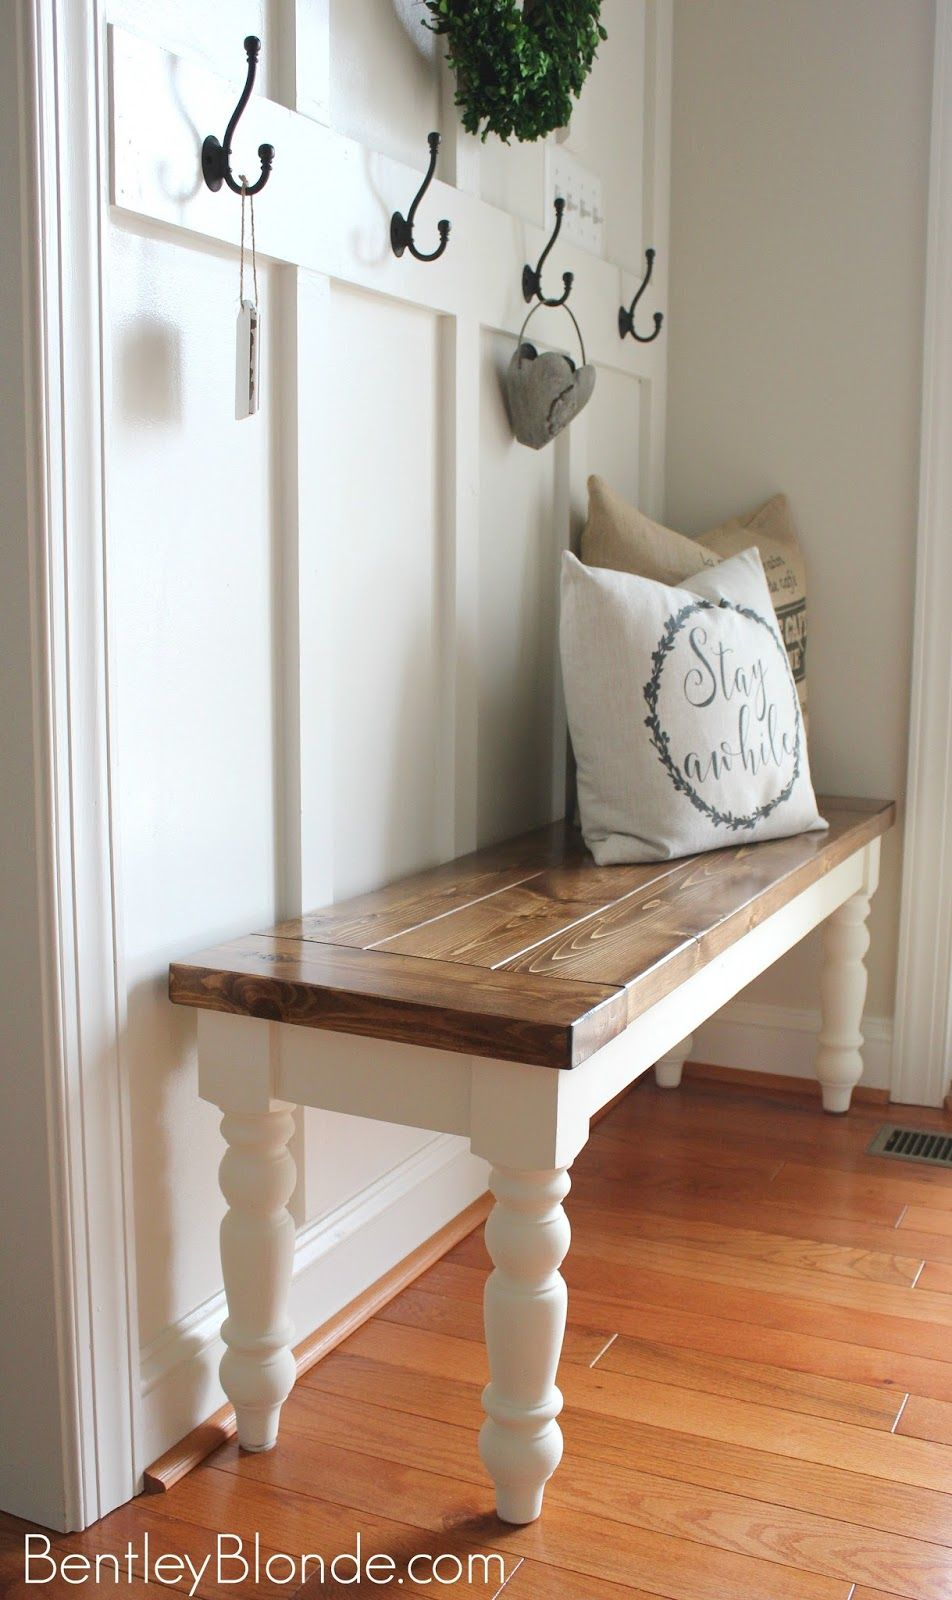 Laundry Room Table At The End Of BentleyBlonde DIY Farmhouse Bench Tutorial